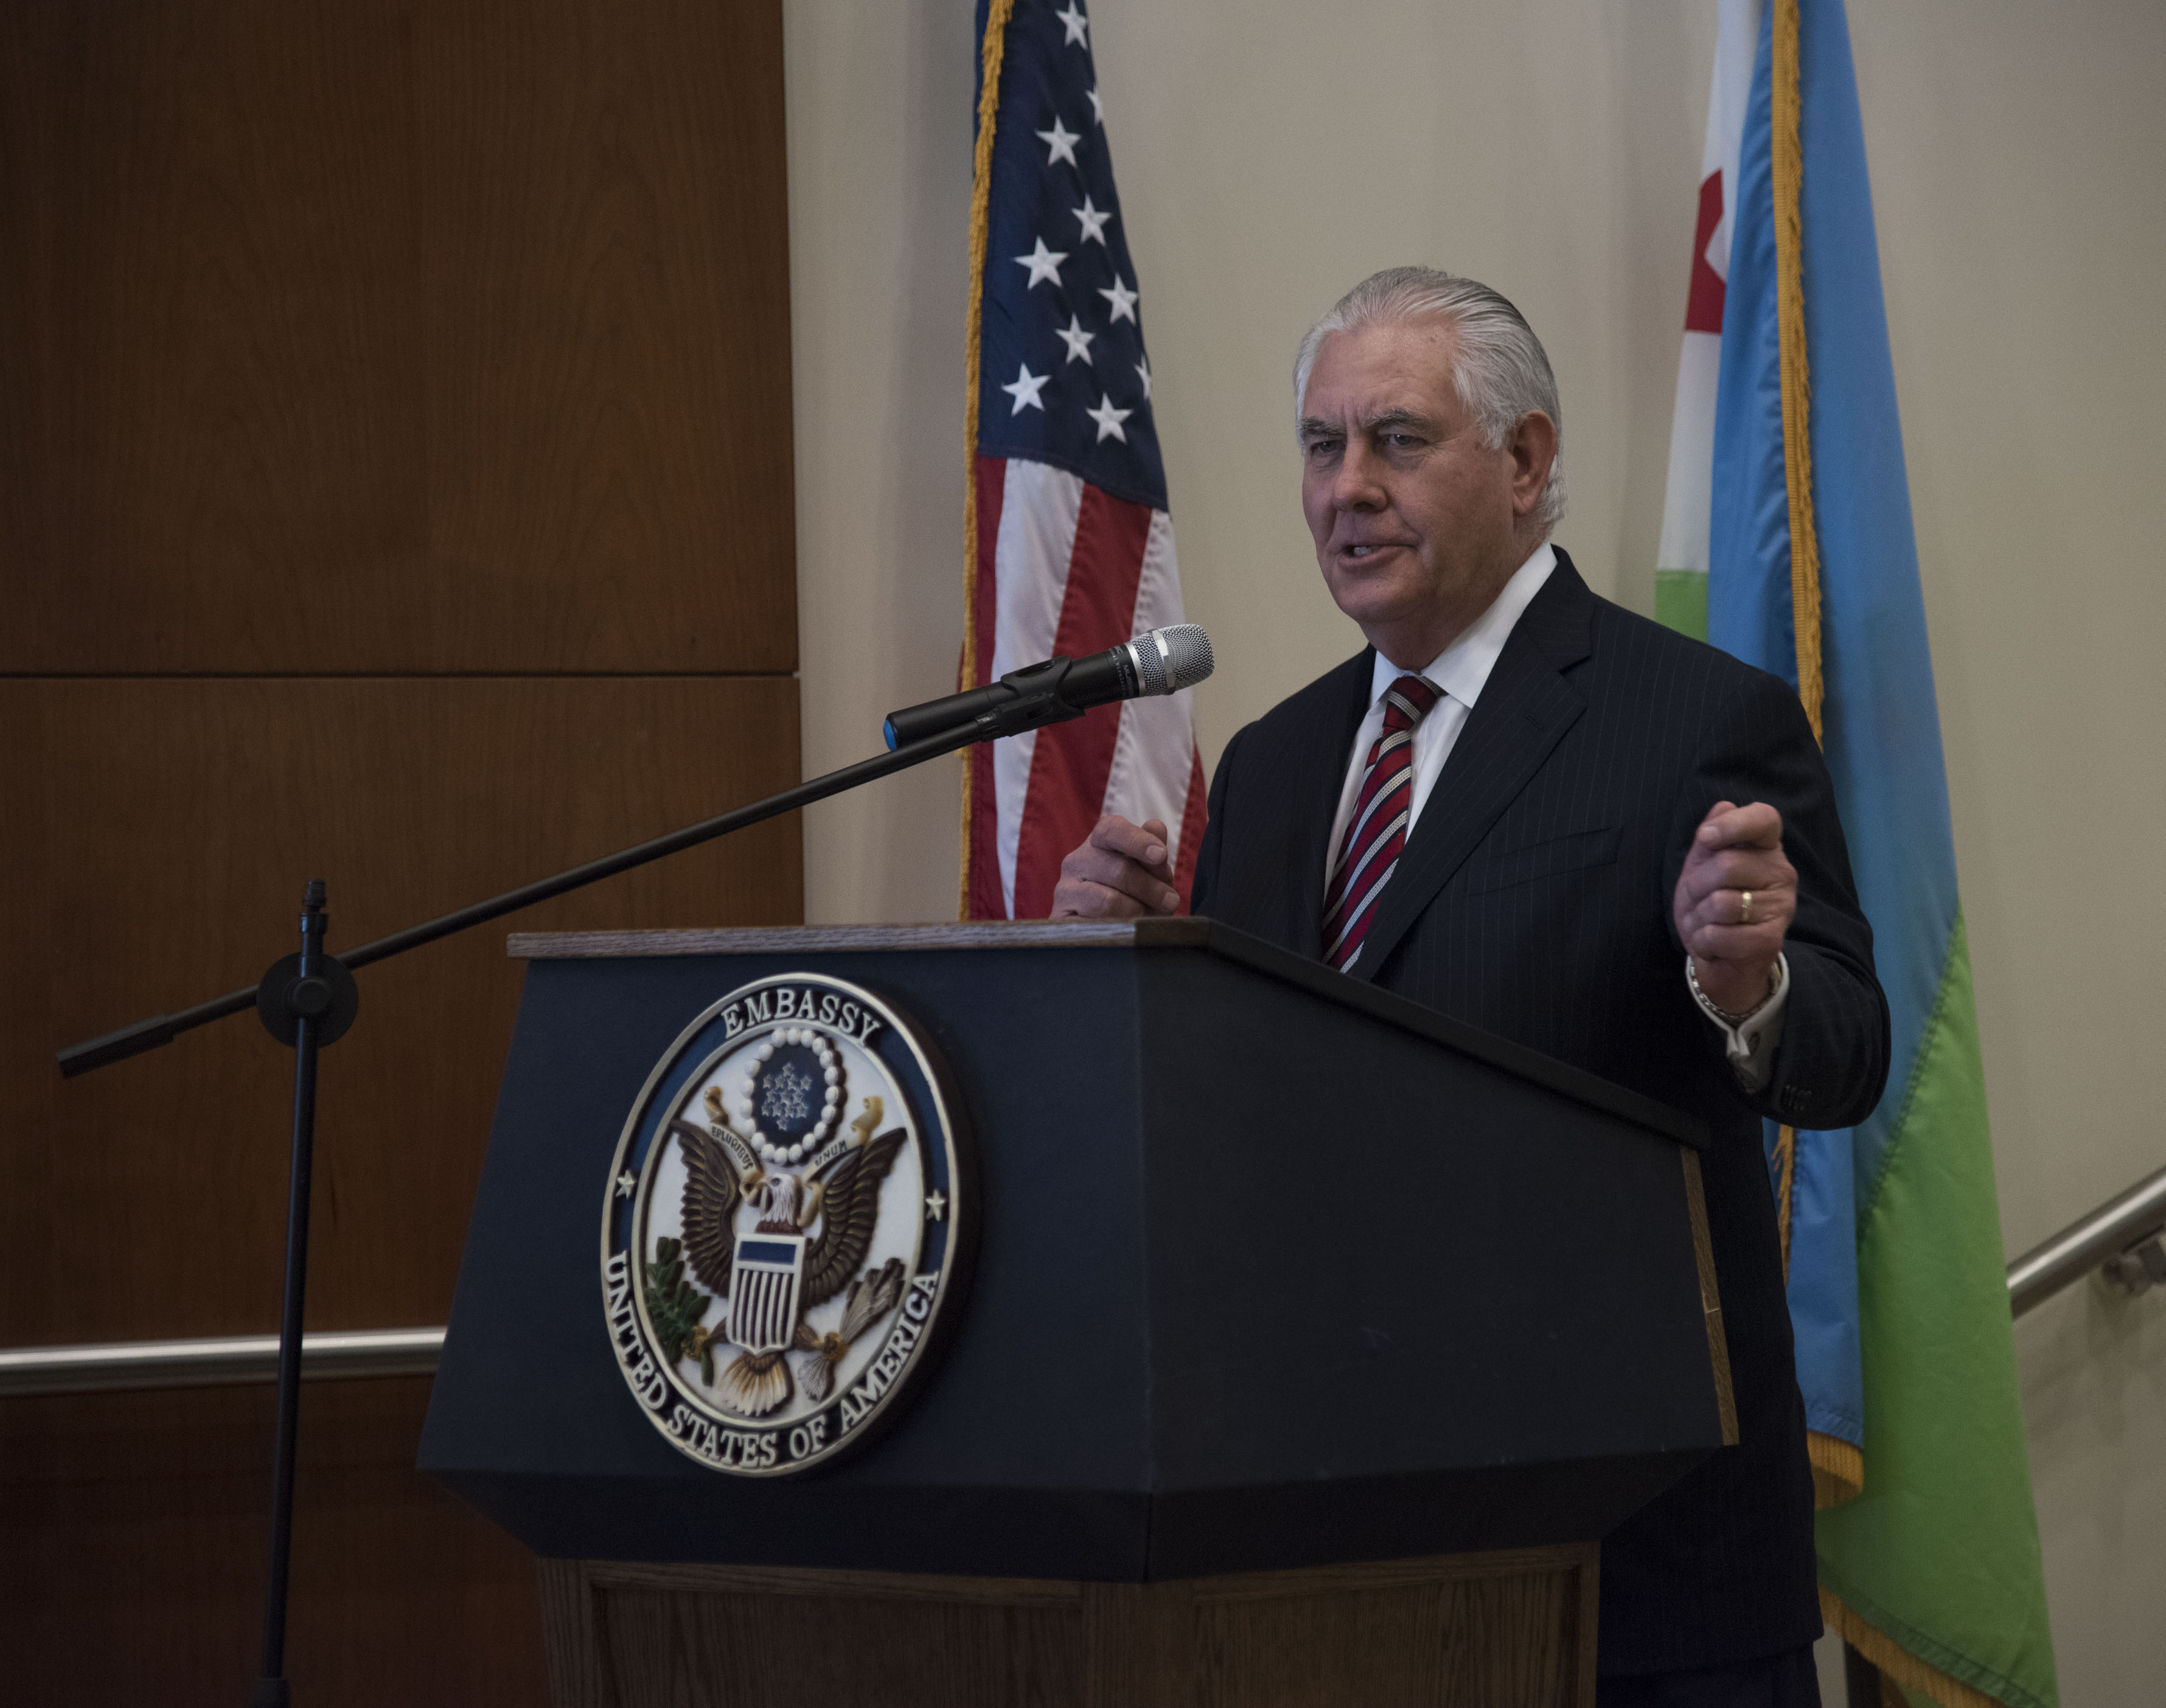 U.S. Secretary of State Rex Tillerson speaks to personnel at the U.S. Embassy, Djibouti, March 9, 2018. Secretary Tillerson traveled to Djibouti to discuss the U.S.-Djiboutian partnership, and exchanged views on bilateral concerns, security threats, and economic reforms. (U.S. Air National Guard photo by Staff Sgt. Allyson L. Manners)